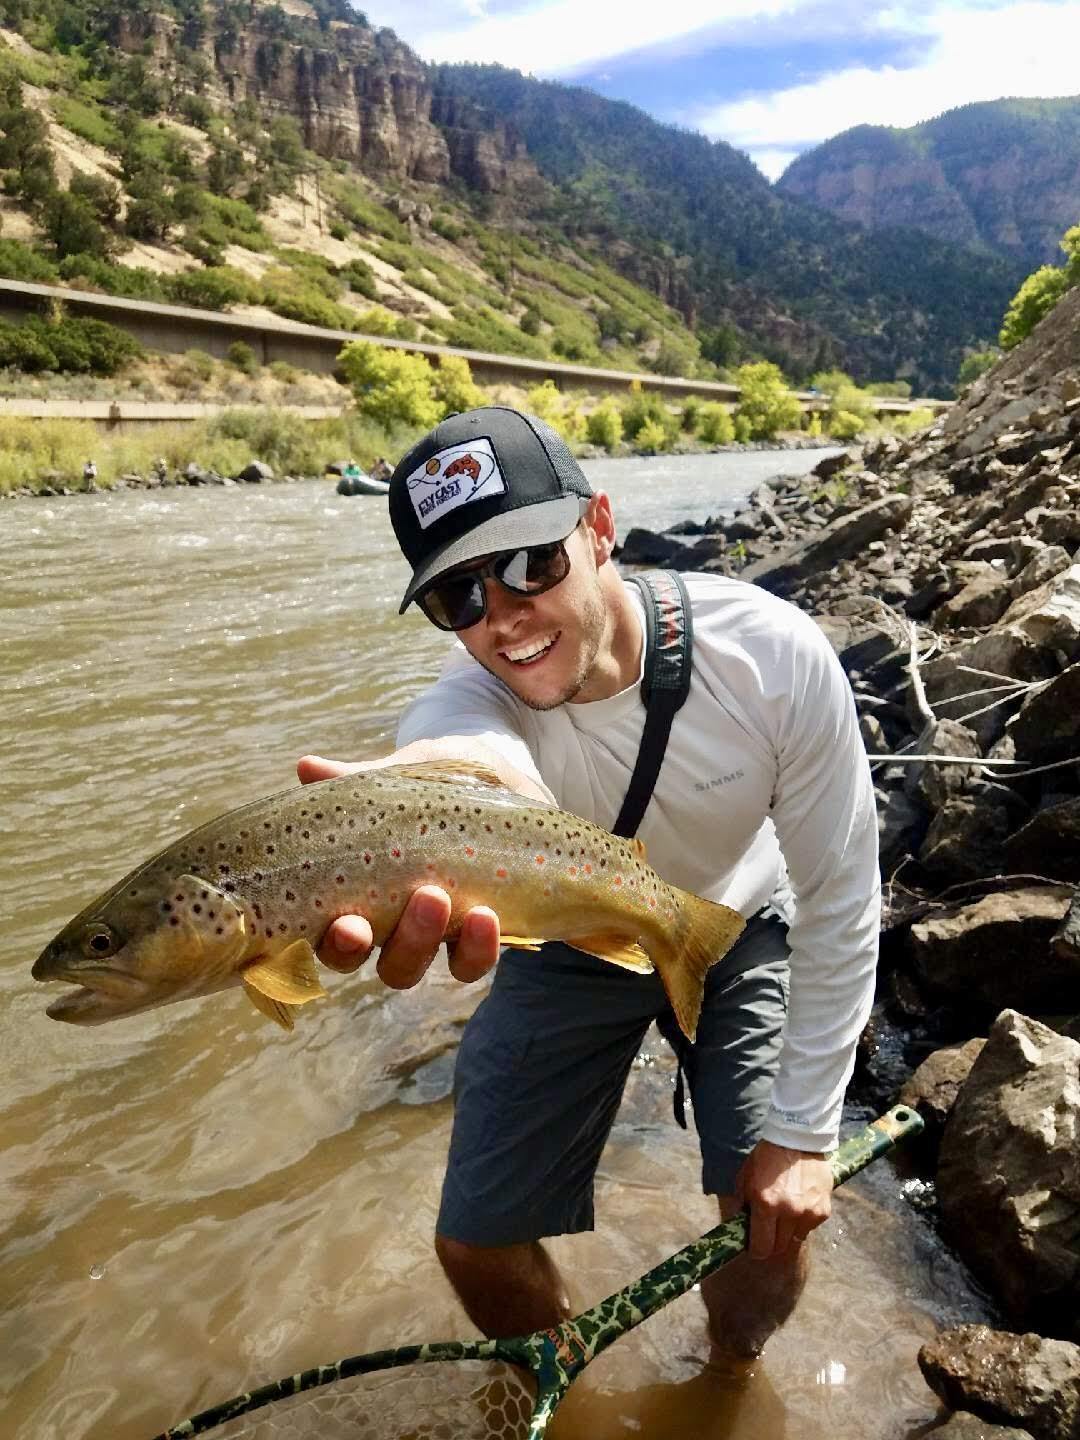 Travis Coe  Travis is a Colorado native who grew up in Evergreen. Growing up, baseball was his passion, but once he graduated from Colorado State University, fly fishing became his new addiction. Now, every chance he gets, he escapes to the river to enjoy the scenery and to challenge himself to become a better angler. Travis enjoys teaching his friends and co-workers the art of fly fishing and has had so much fun doing so, he and his good friend started a fly fishing reporting and forecasting website called FlyCast River Forecast that helps anglers of all skill levels have a fun day on the river. Travis is very excited about the opportunity to share his passion for fly fishing and the outdoors through the Mayfly Project.